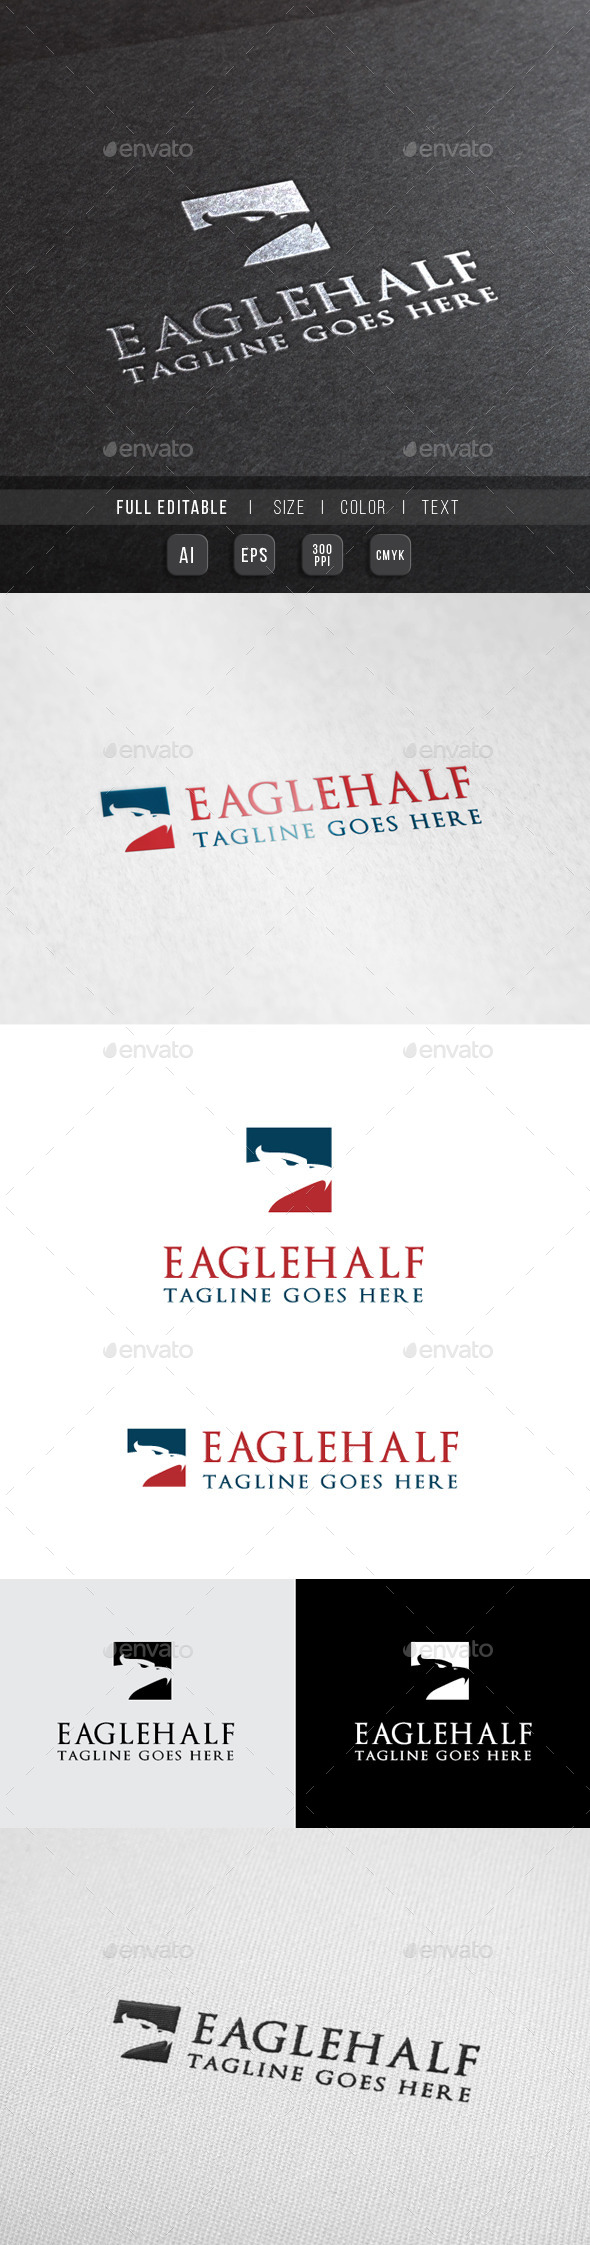 Eagle Finance - Tour Travel Logo - Animals Logo Templates